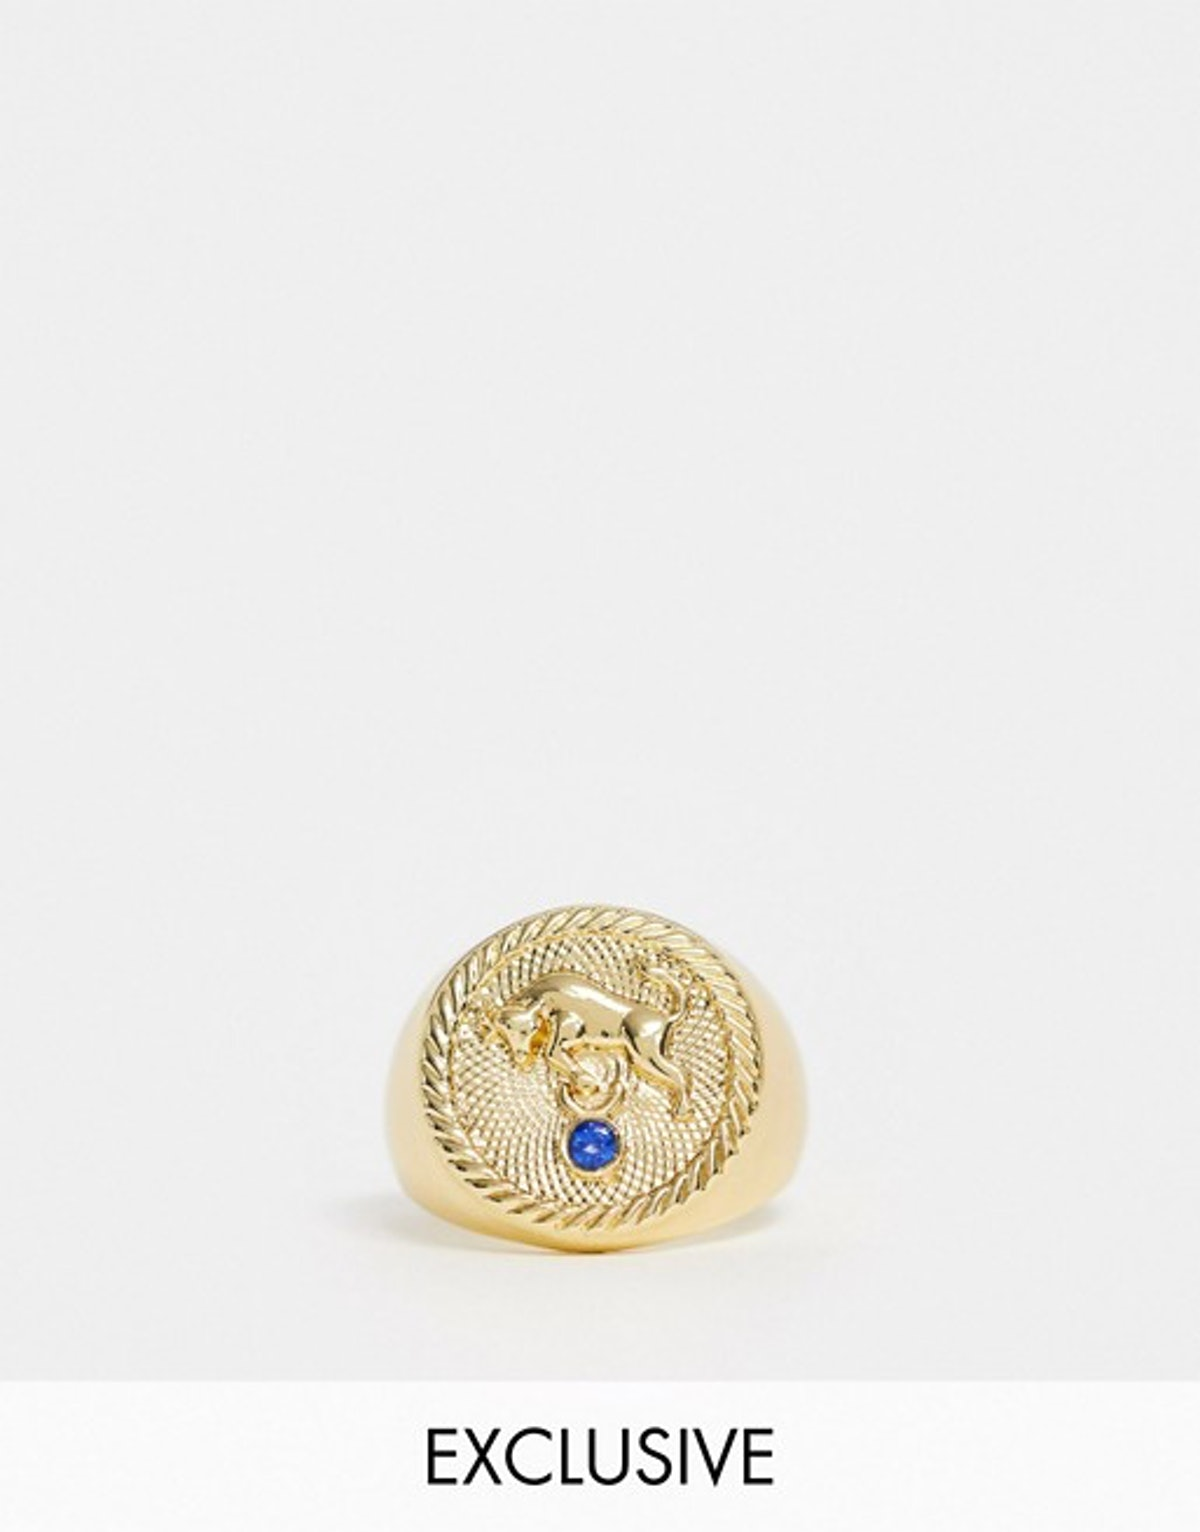 Reclaimed Vintage Inpired 14k Gold Plate Taurus Star Sign Coin Ring